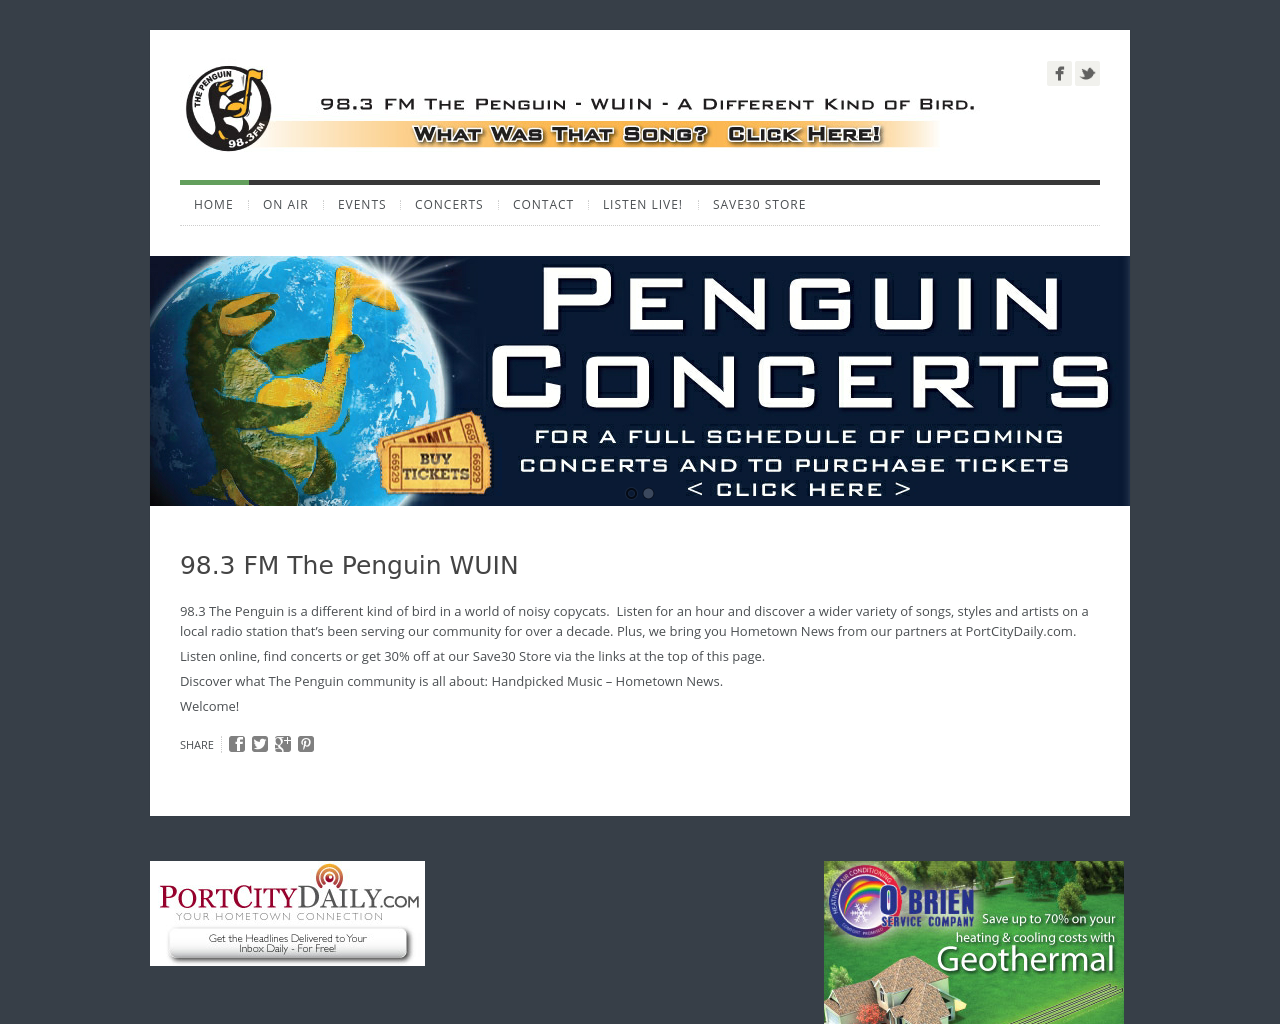 98.3-FM-The-Penguin-Advertising-Reviews-Pricing